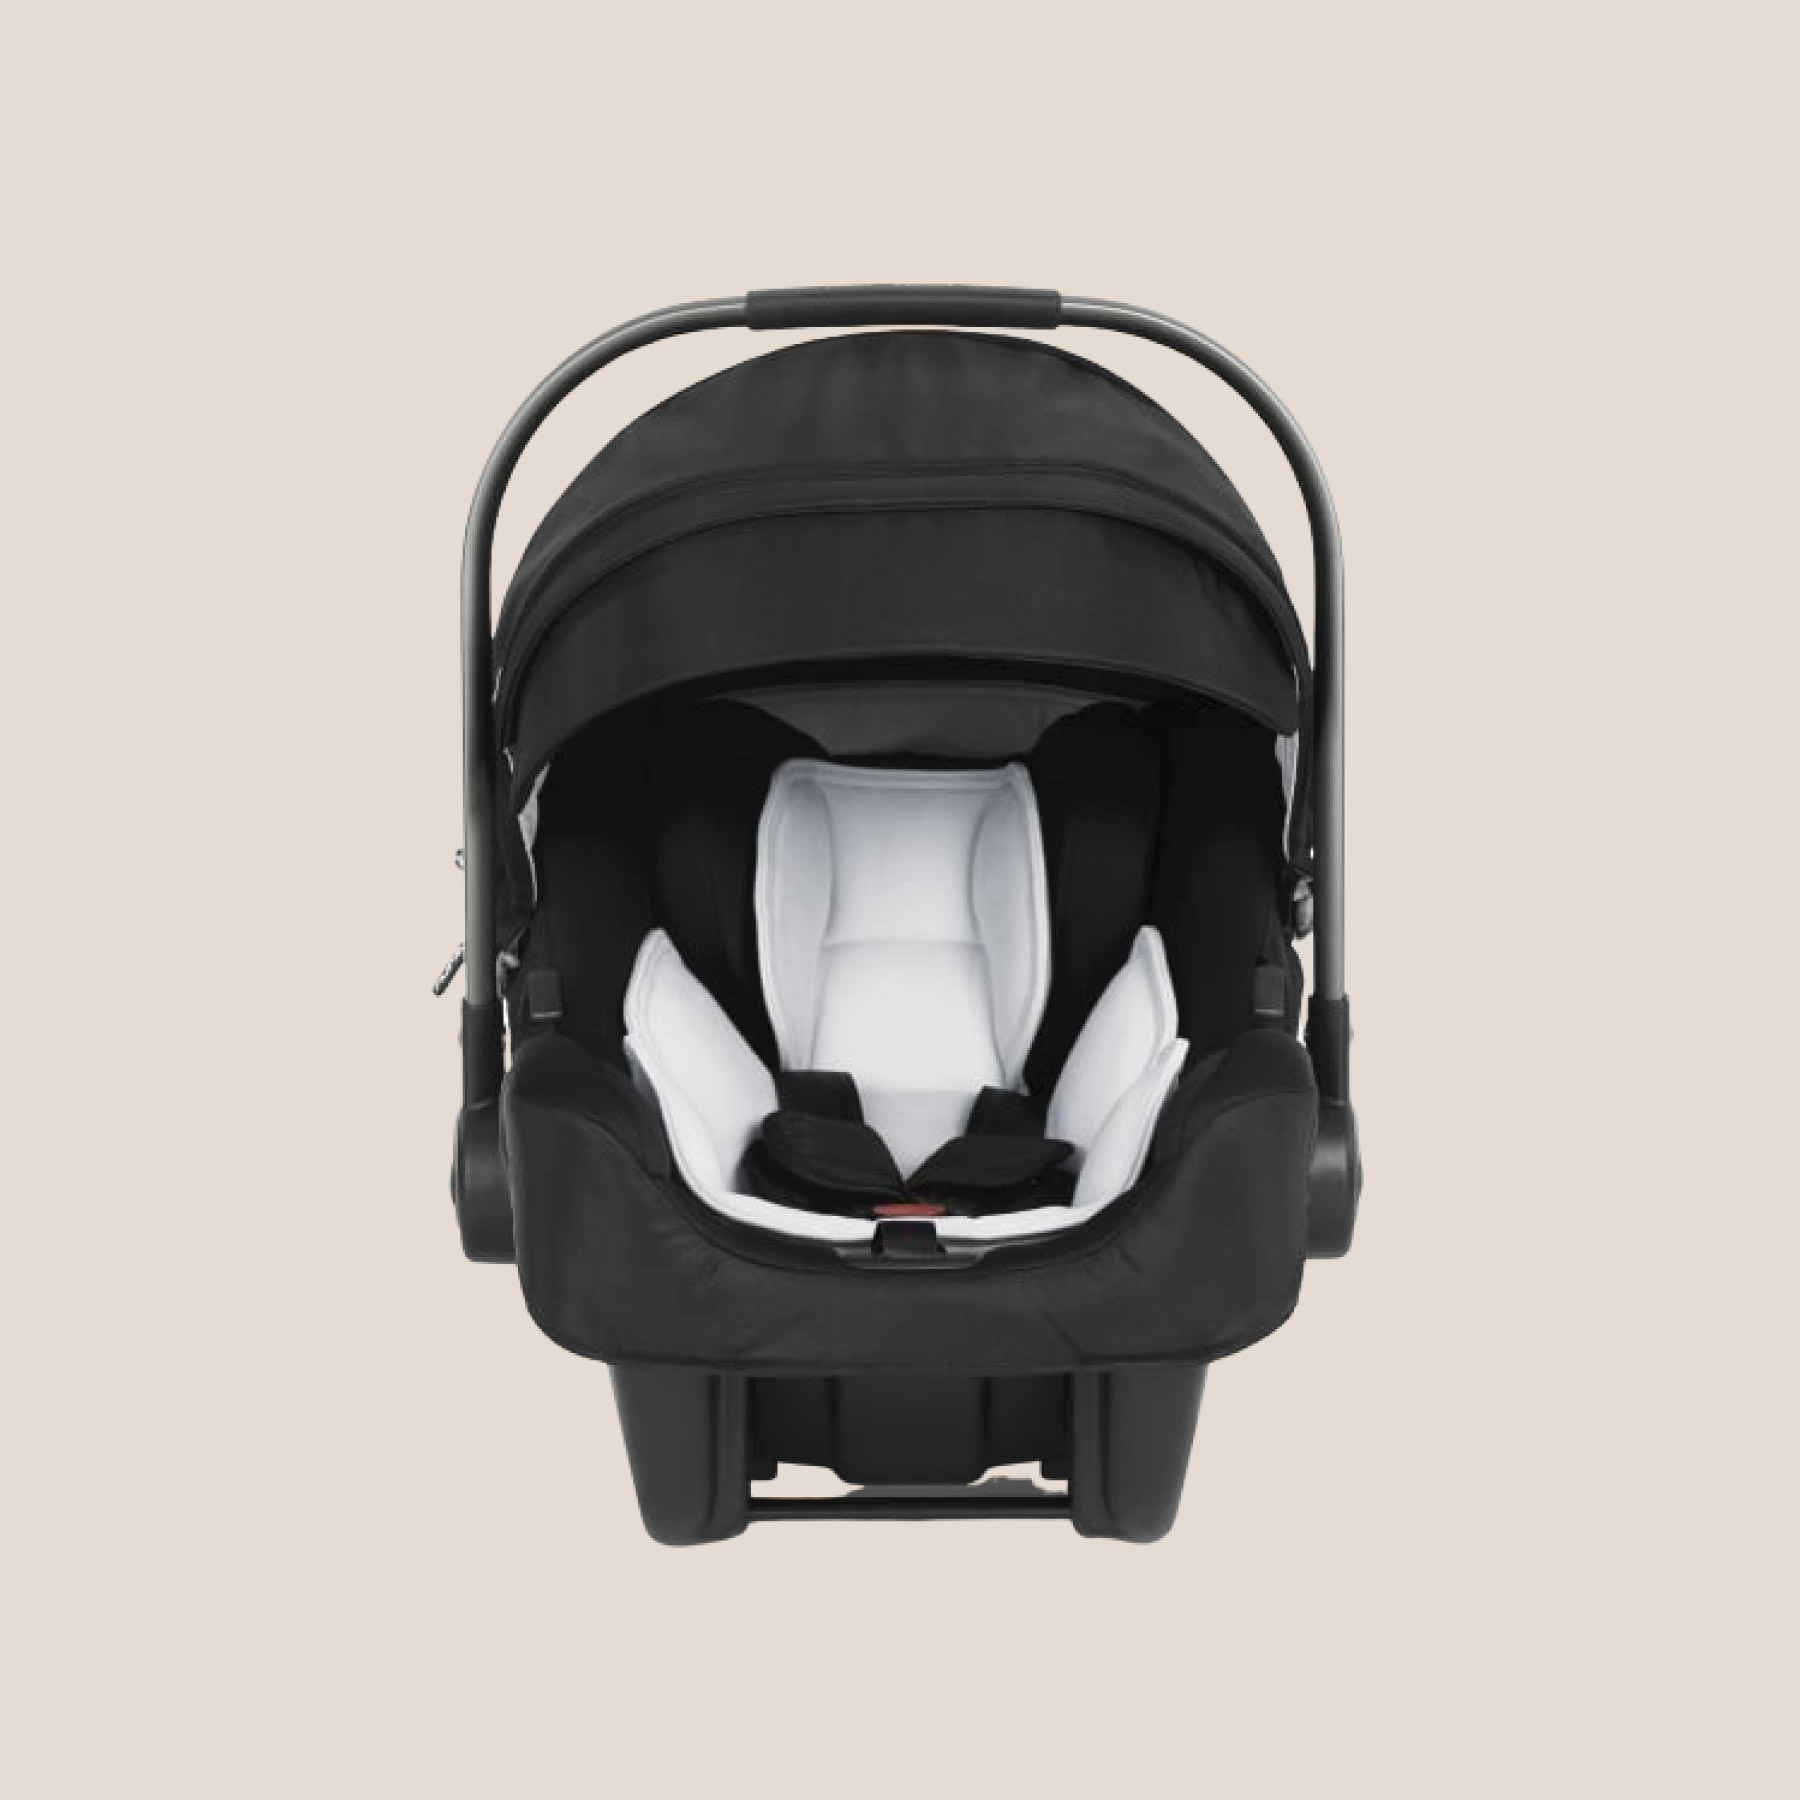 The Best Baby Capsule for Safe Journeys